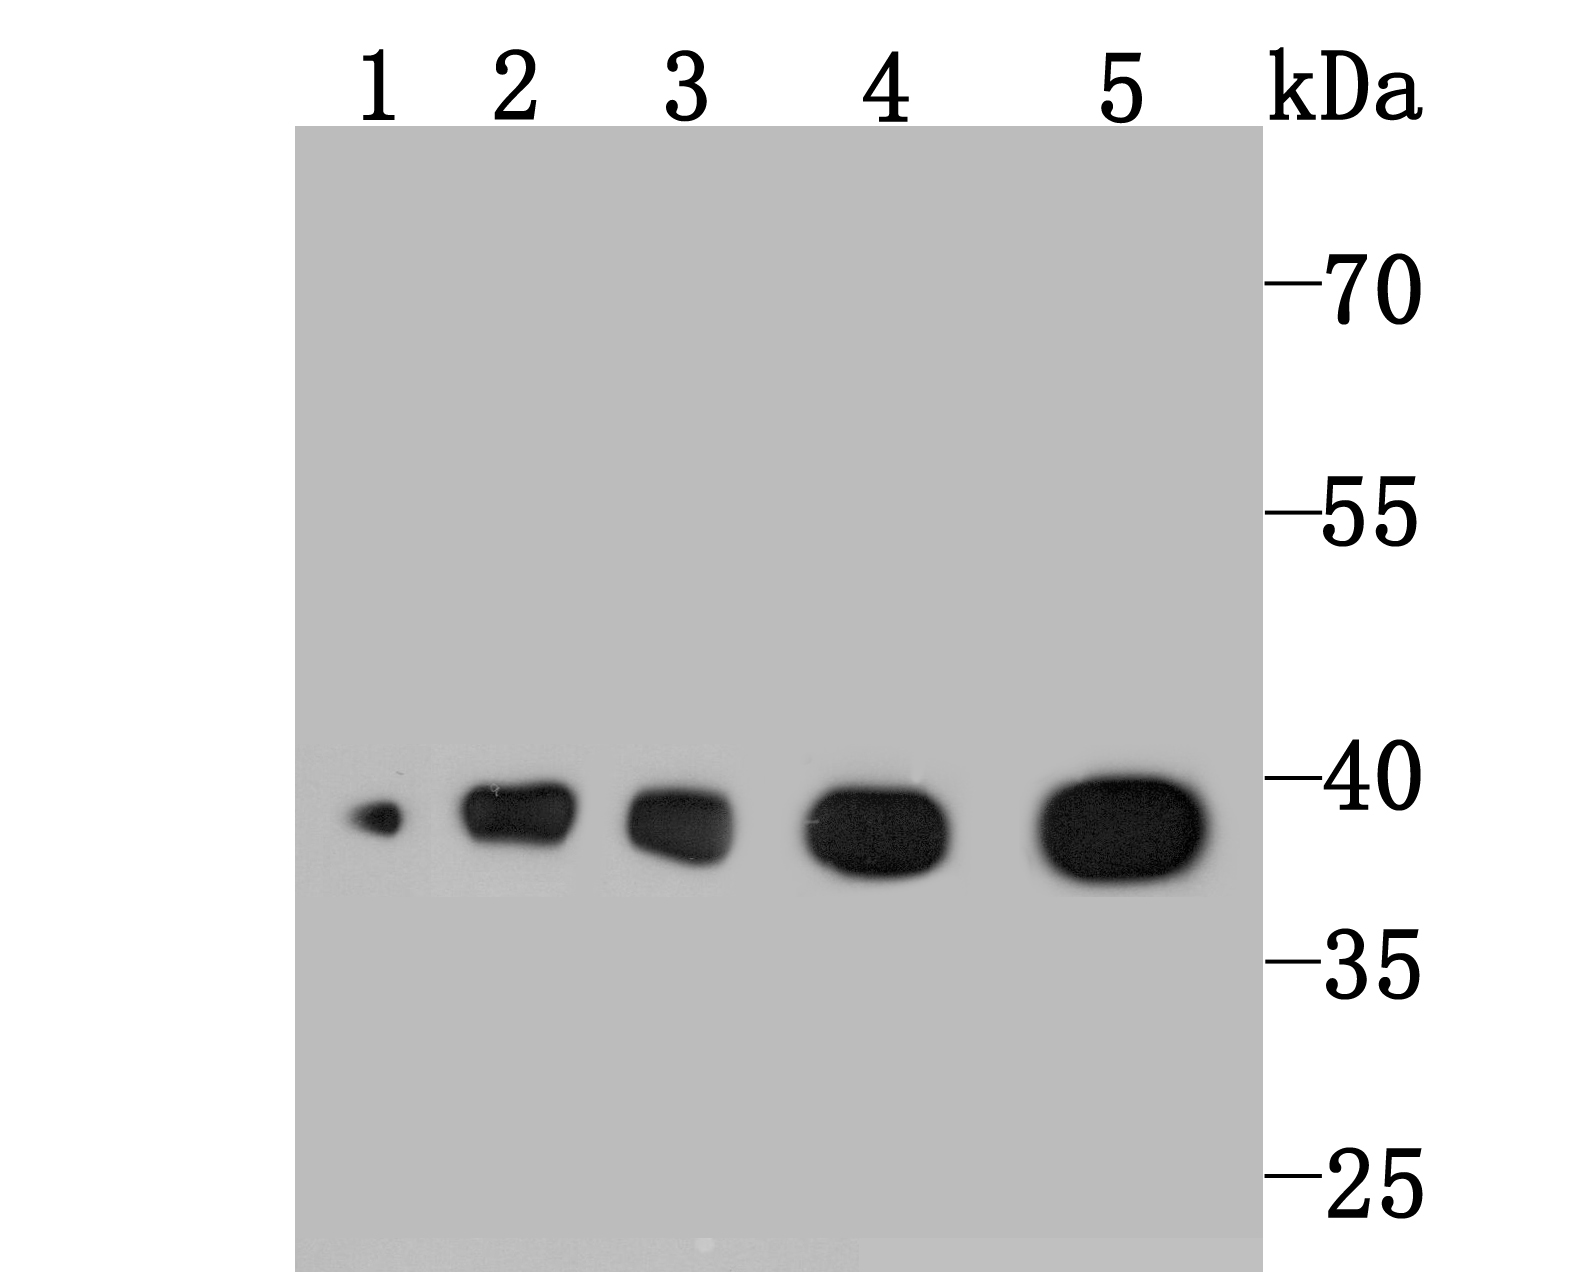 Western blot analysis of Aldolase on different lysates using anti-Aldolase antibody at 1/1,000 dilution.<br />   Positive control:<br />   Lane 1: A549 <br />   Lane 2: Hela <br />   Lane 3: Mouse liver <br />   Lane 4: Rat liver<br />   Lane 5: Rat spleen